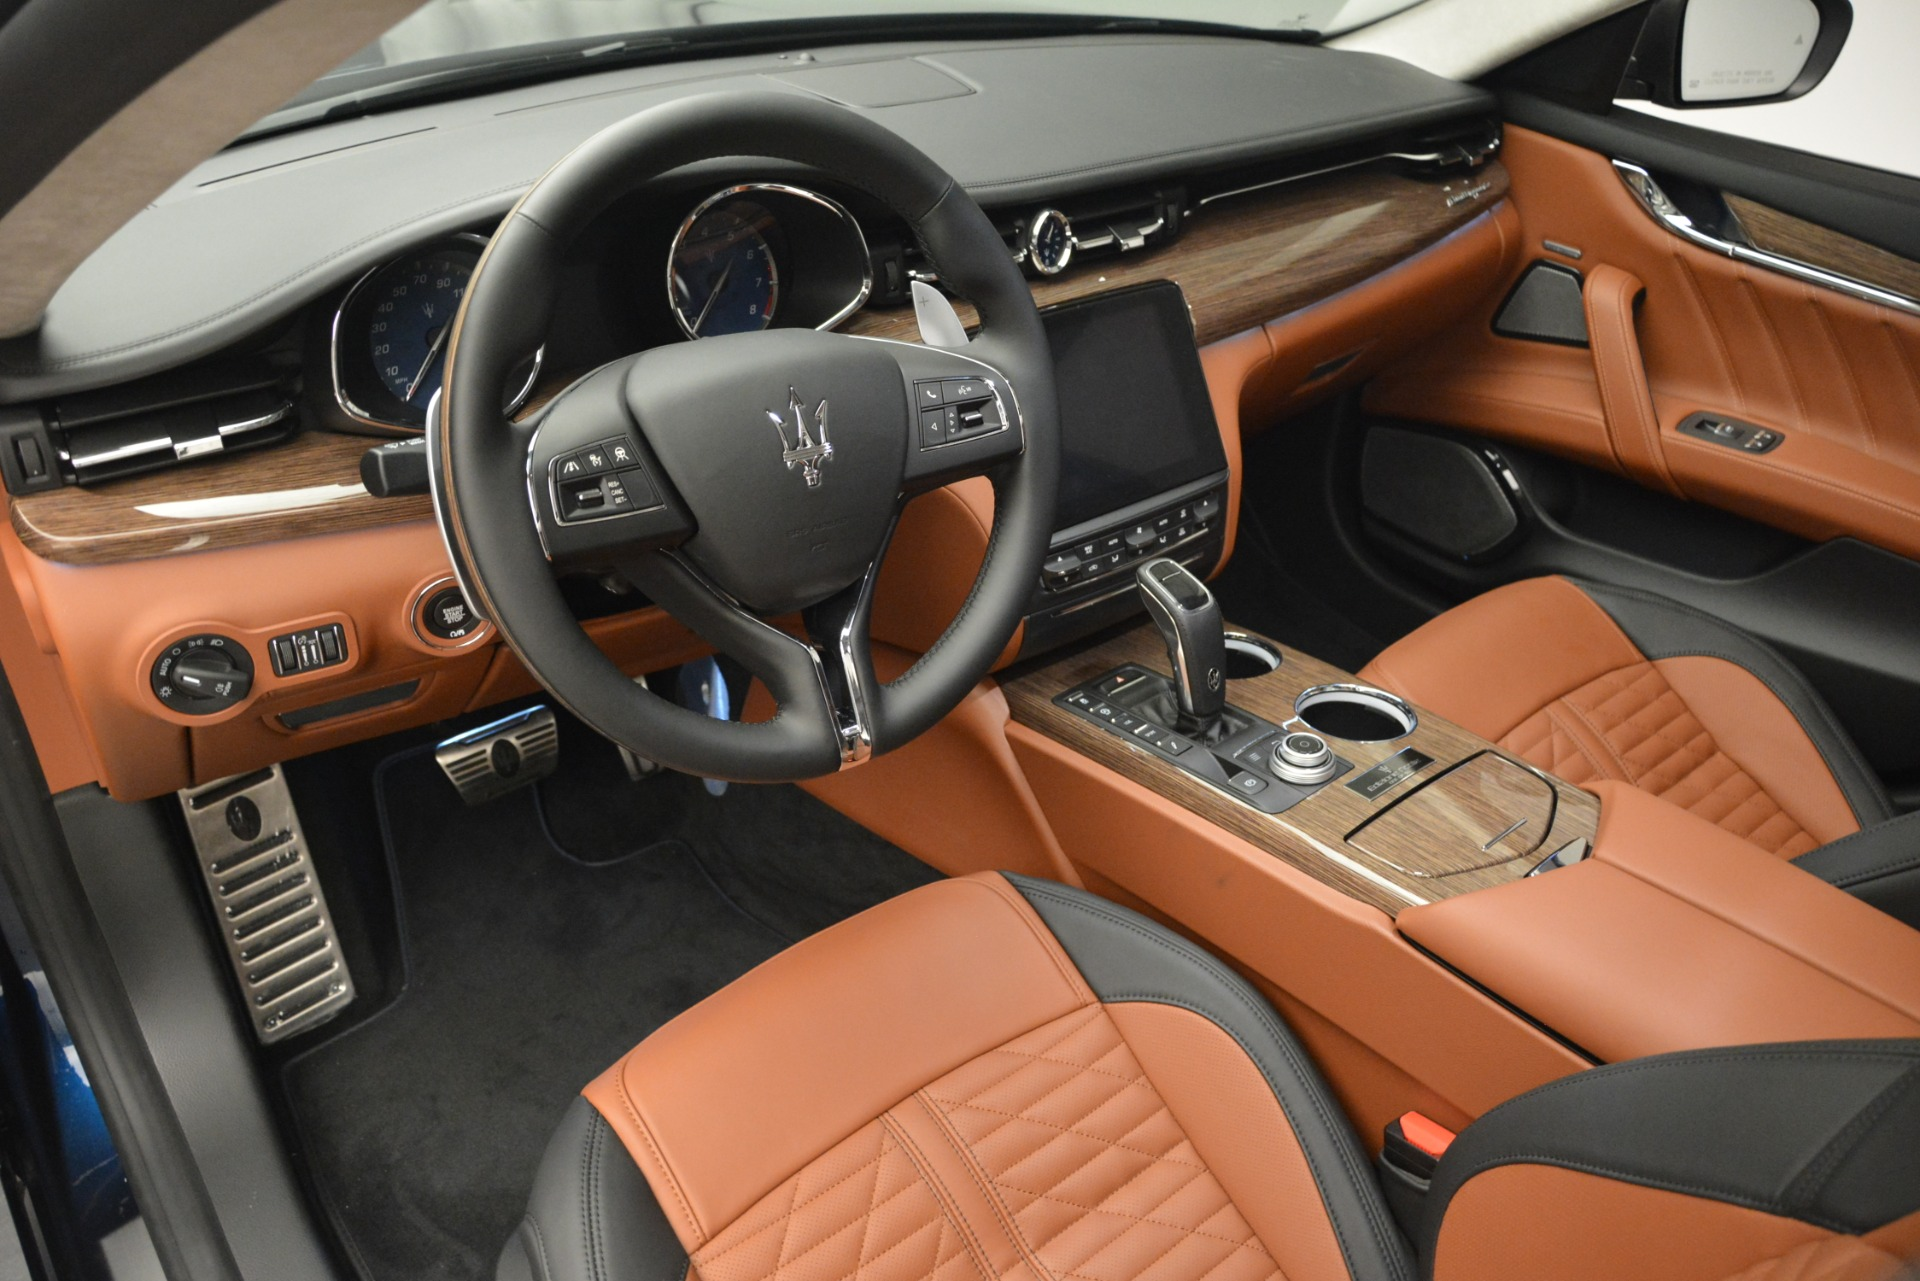 New 2019 Maserati Quattroporte S Q4 GranLusso Edizione Nobile For Sale In Greenwich, CT 2898_p20